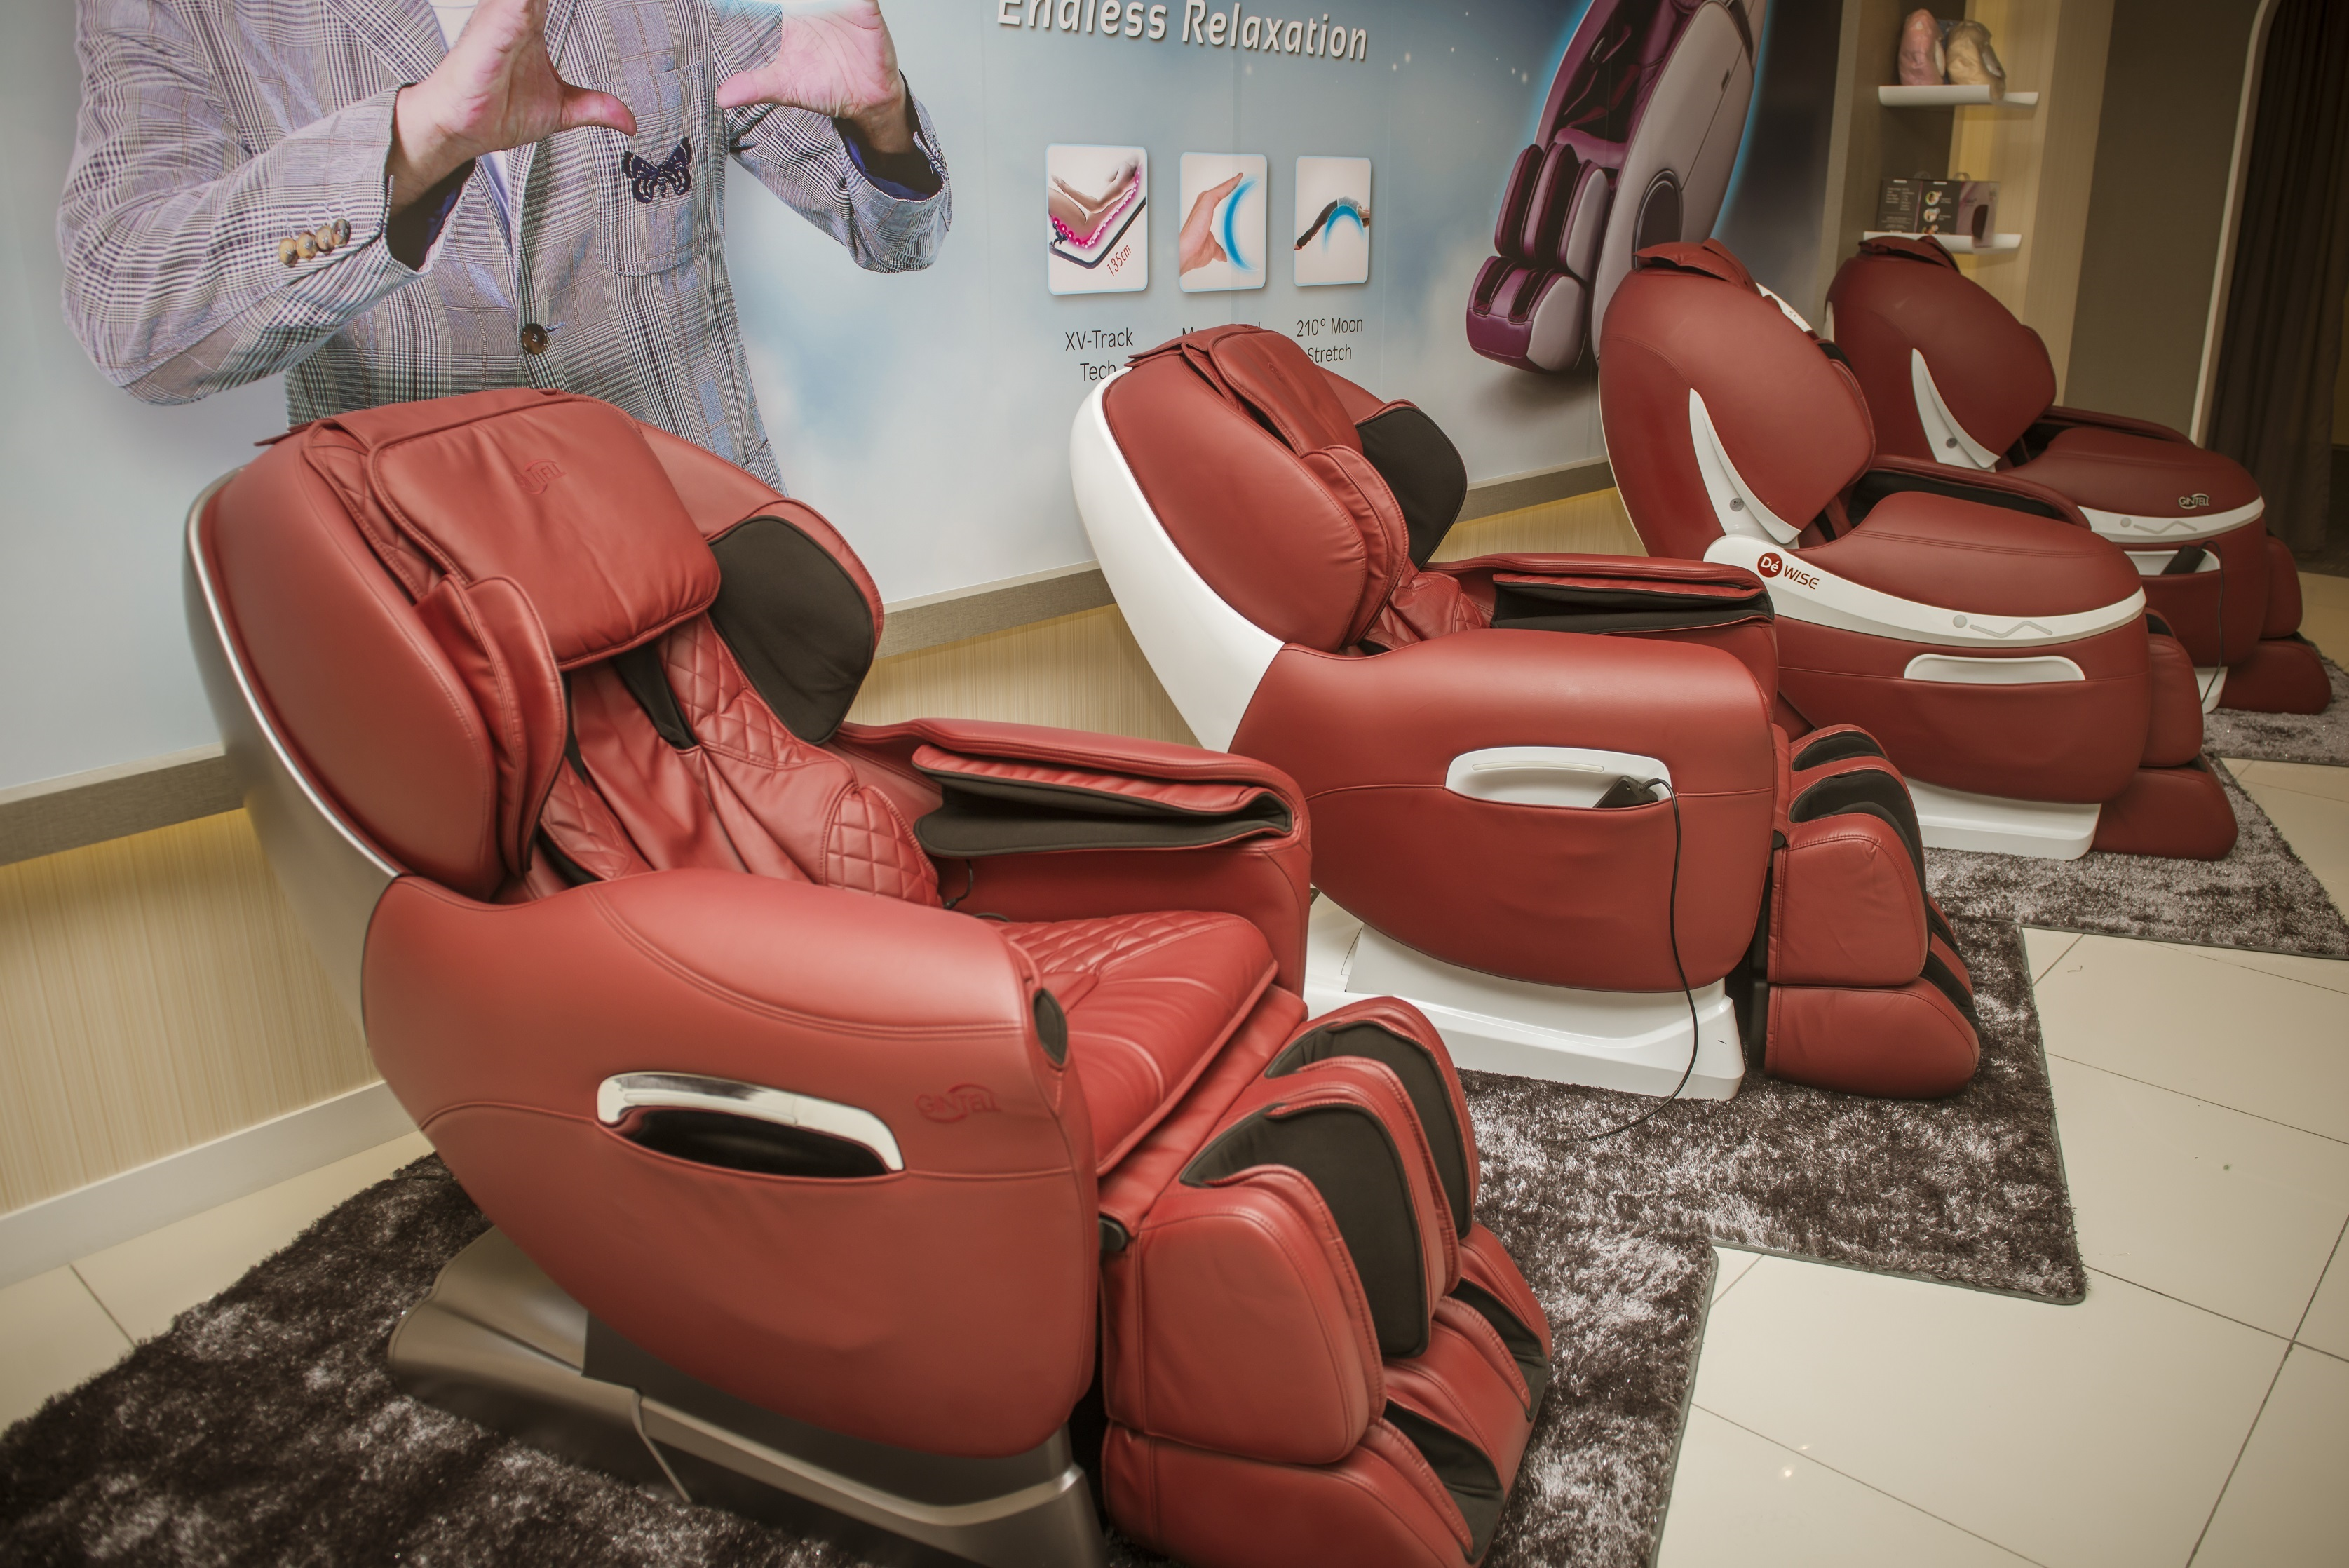 GINTELL Massage Chair Now You can Rent instead of Buying Tommy